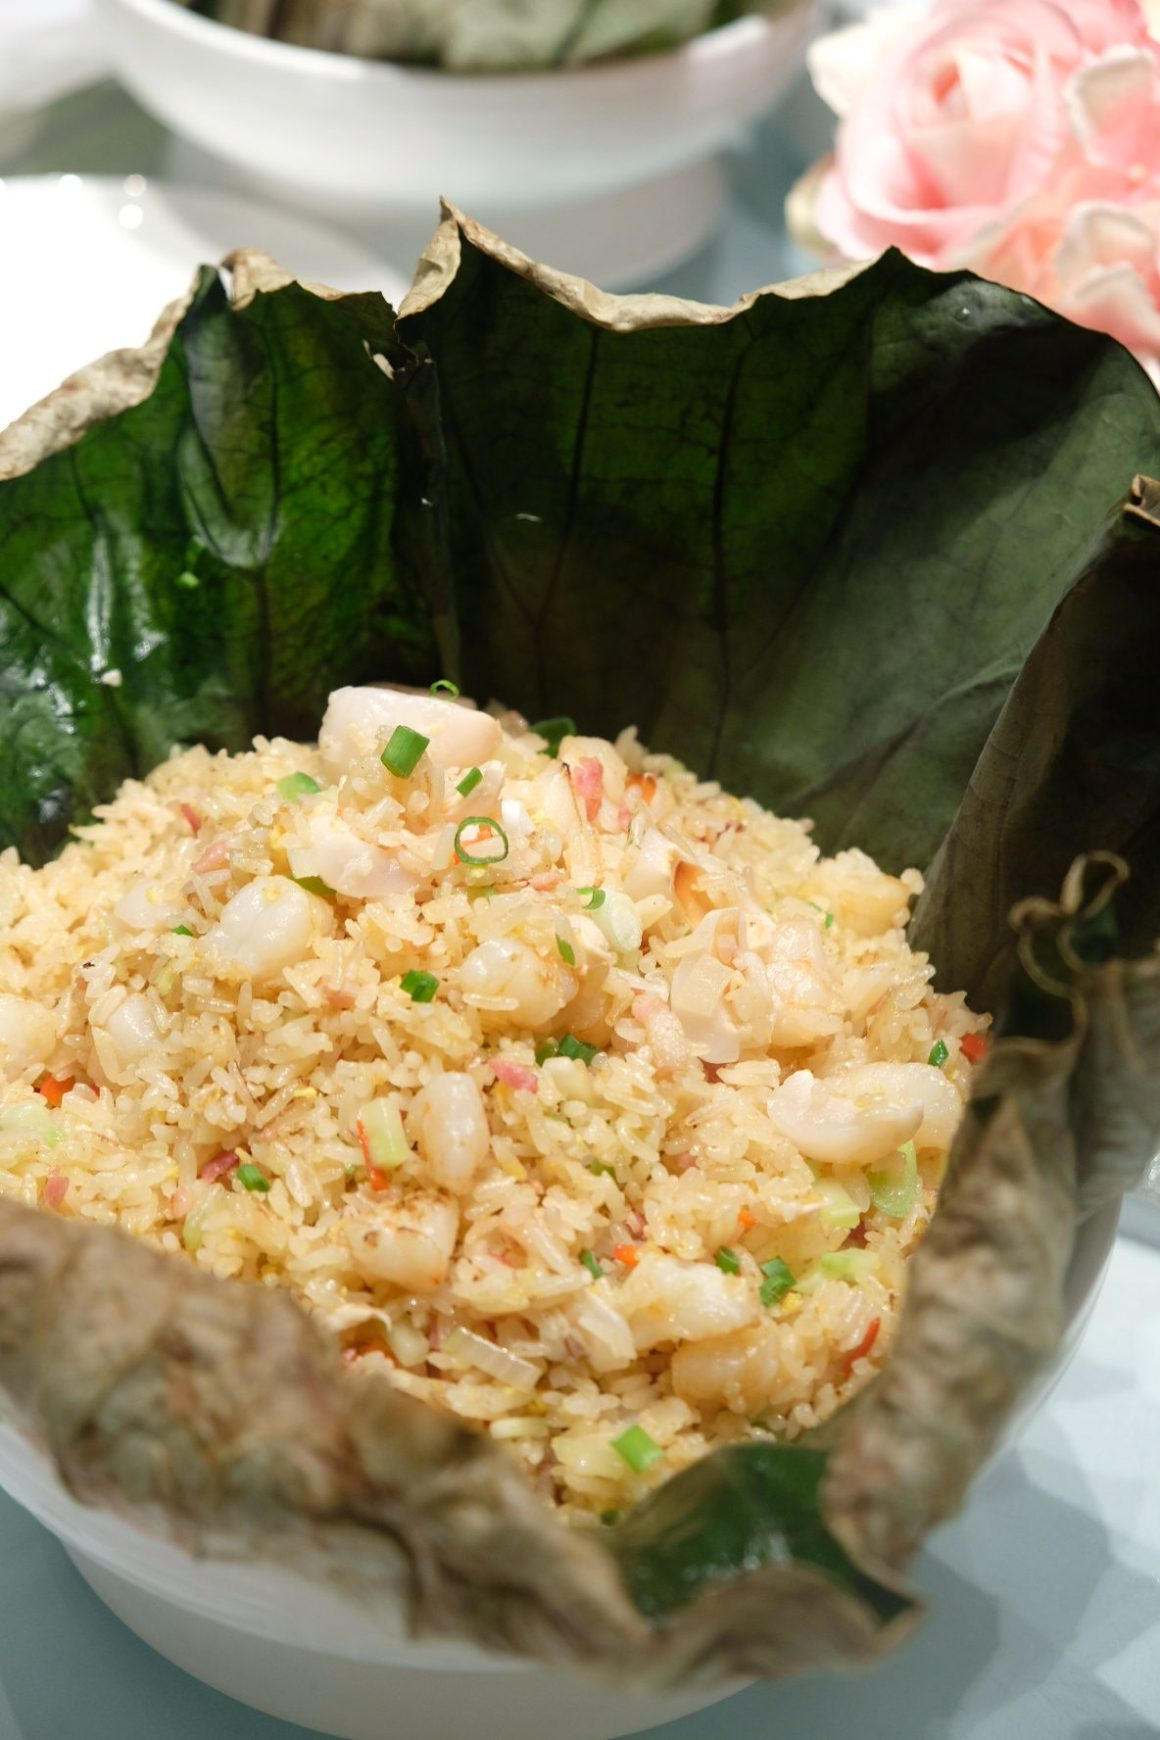 Parents' Day Promotion At Crystal Jade - Supreme fried rice with prawn, bacon and lychee wrapped in lotus leaf ($30)